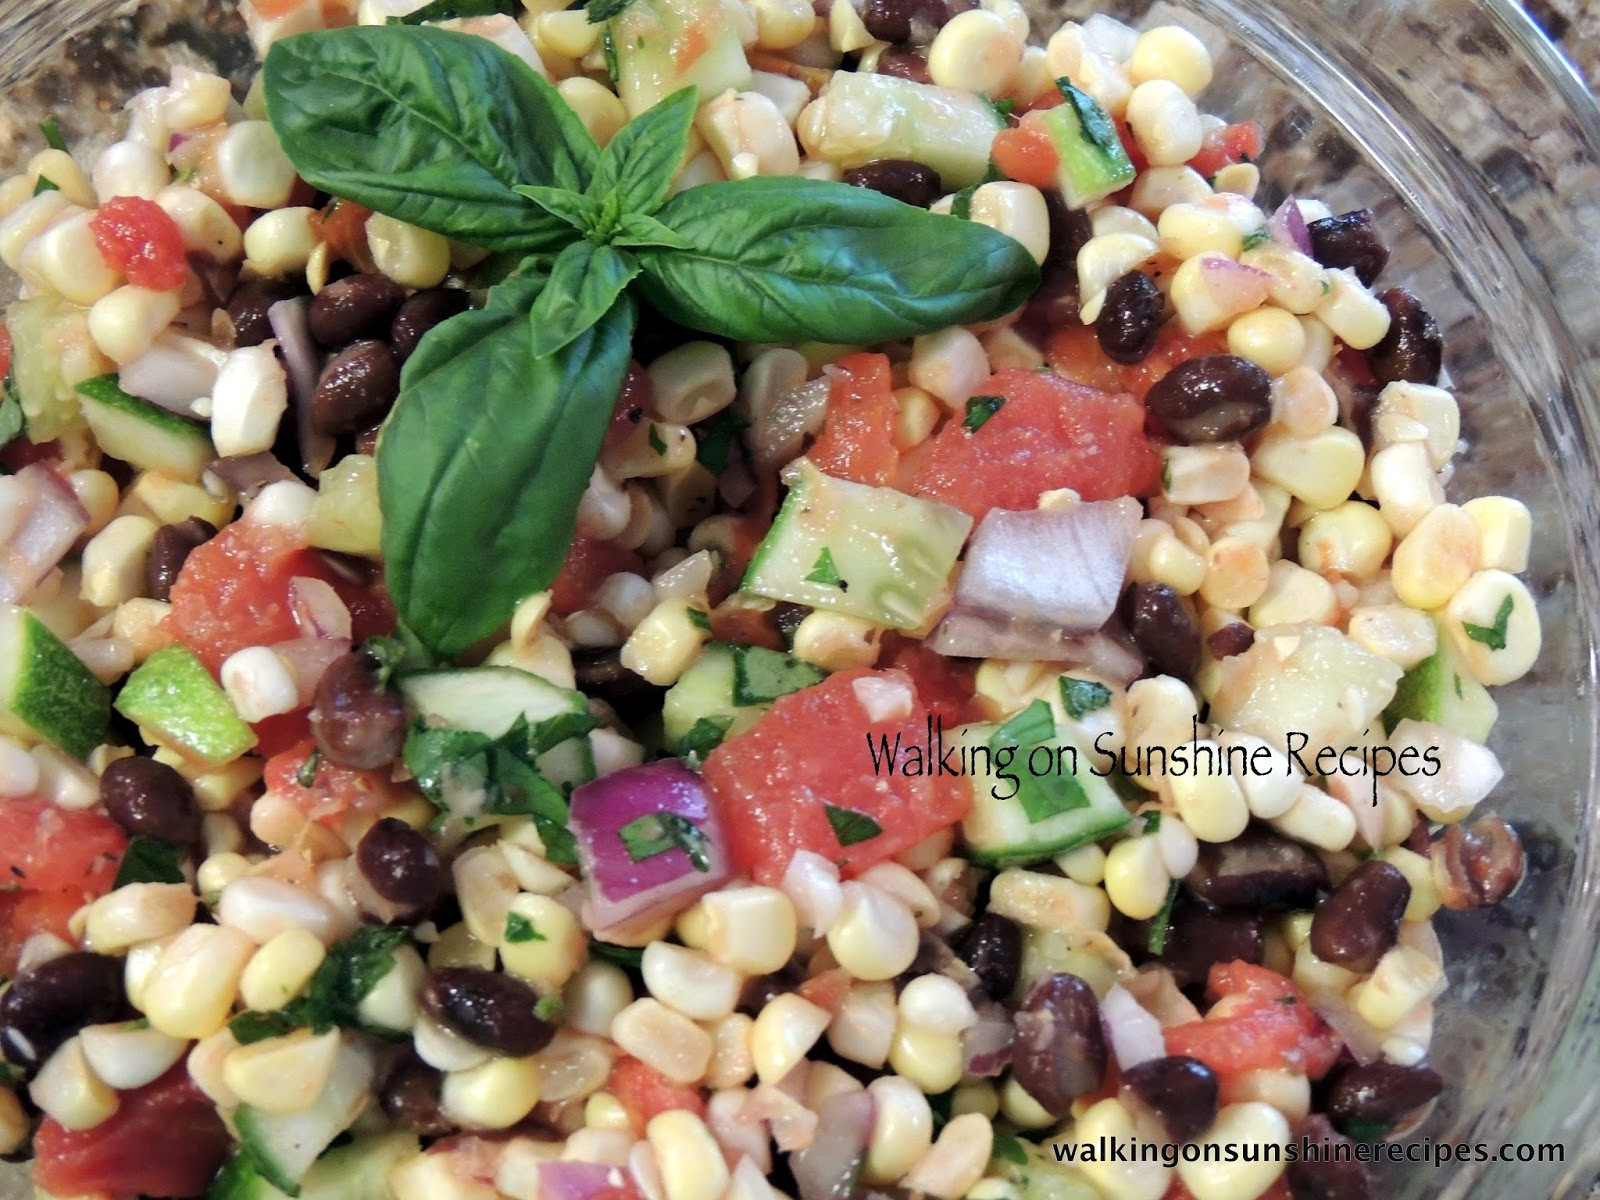 4Th Of July Side Dishes  July 4th Side Dish Recipes Walking Sunshine Recipes